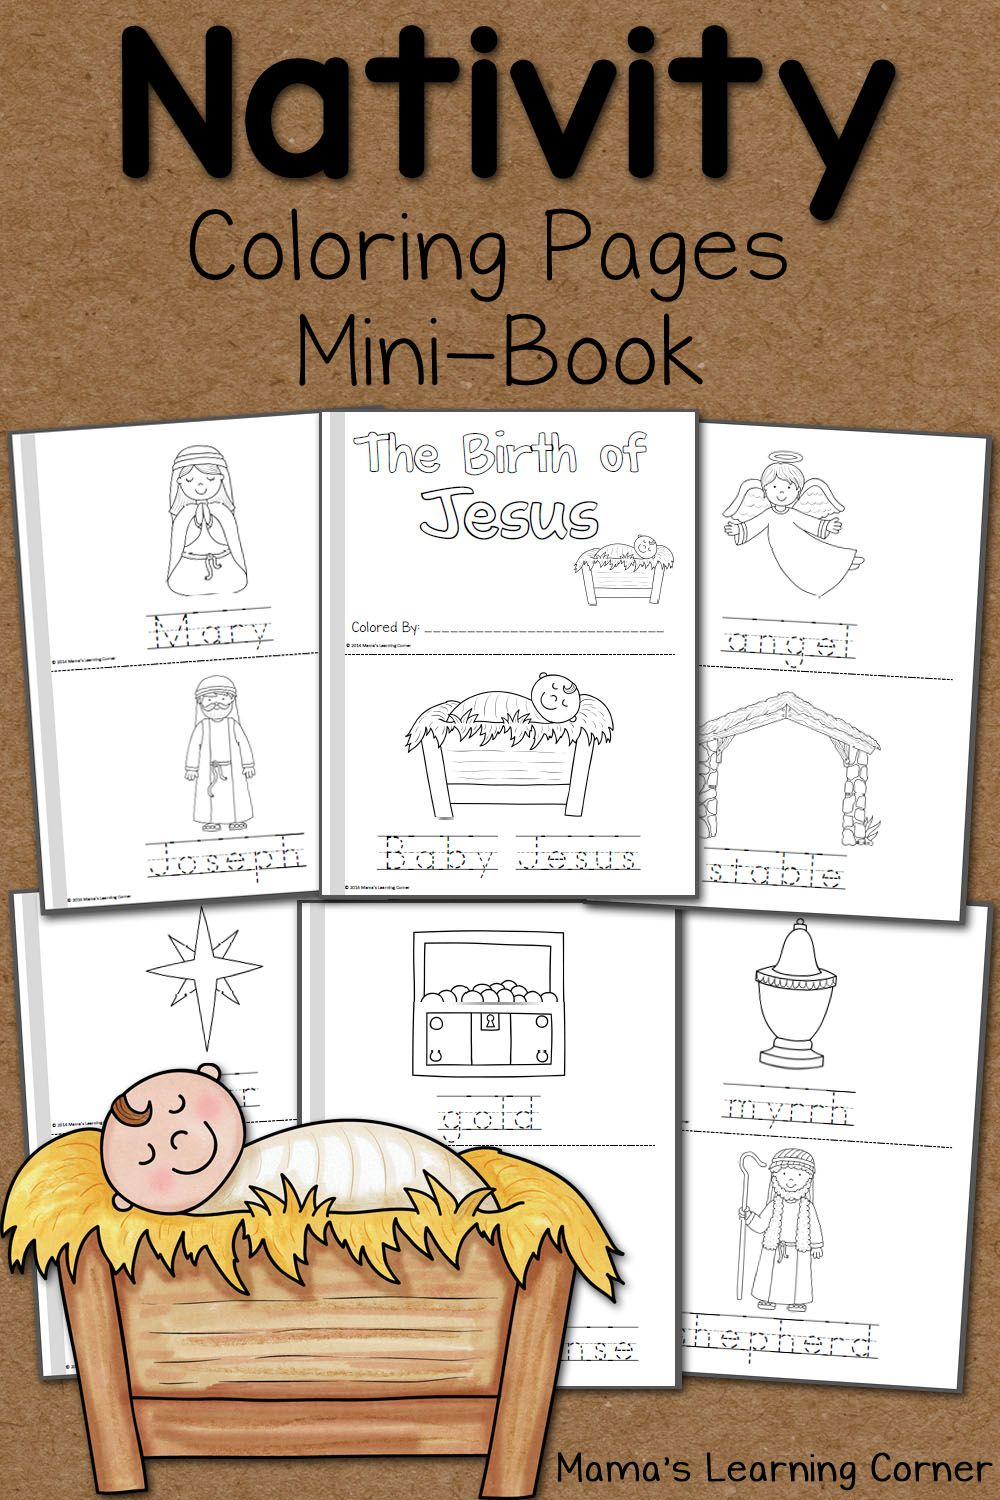 Christmas Reading Coloring Worksheets With Nativity Pages Ultimate Homeschool Board Pinterest